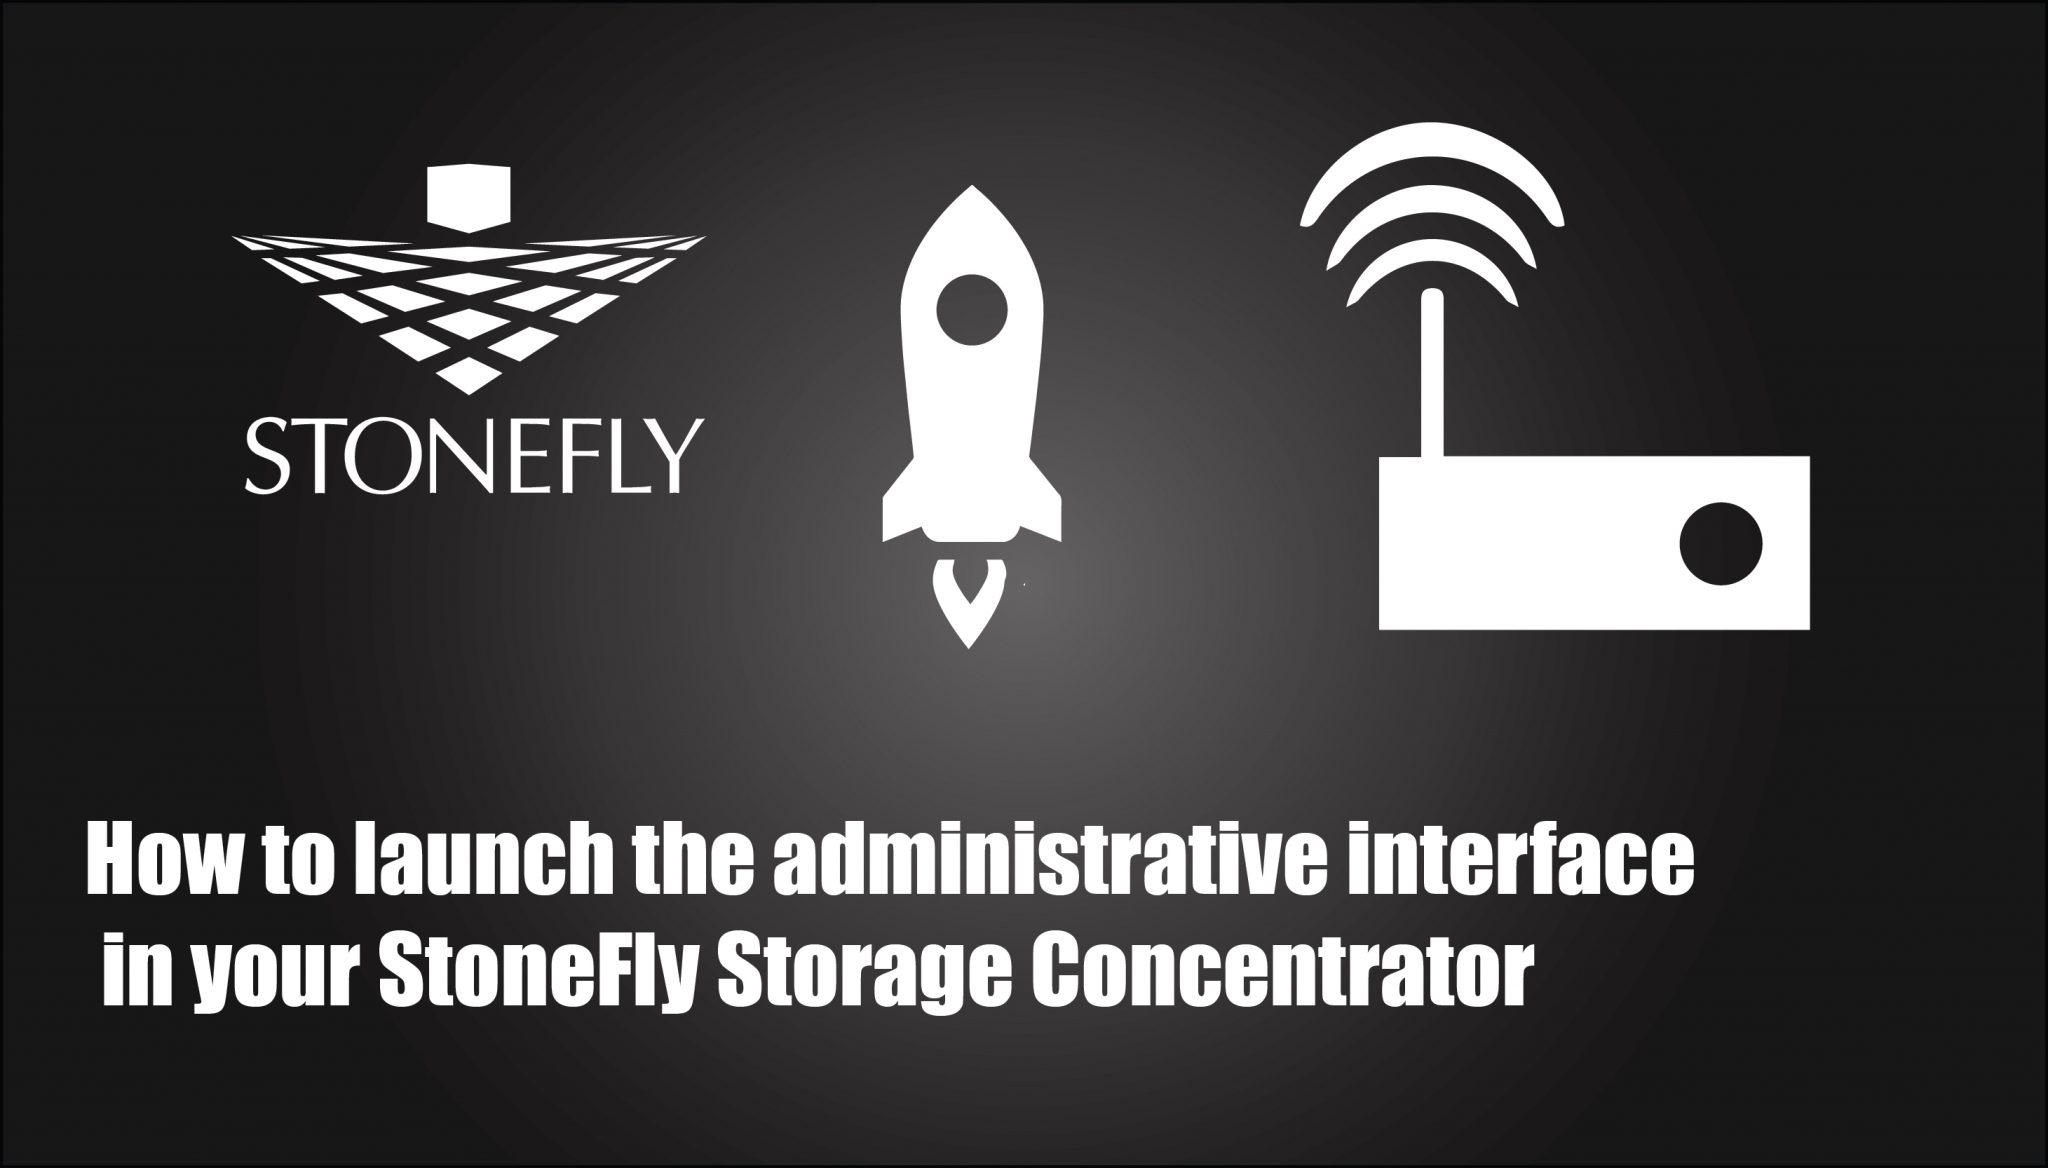 How to launch the administrative interface in your StoneFly Storage Concentrator